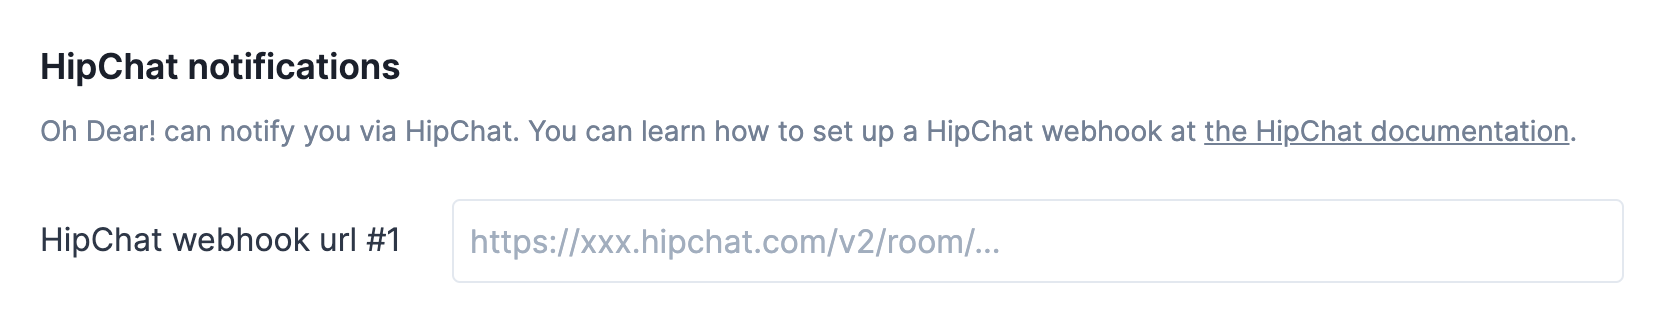 Oh Dear HipChat settings